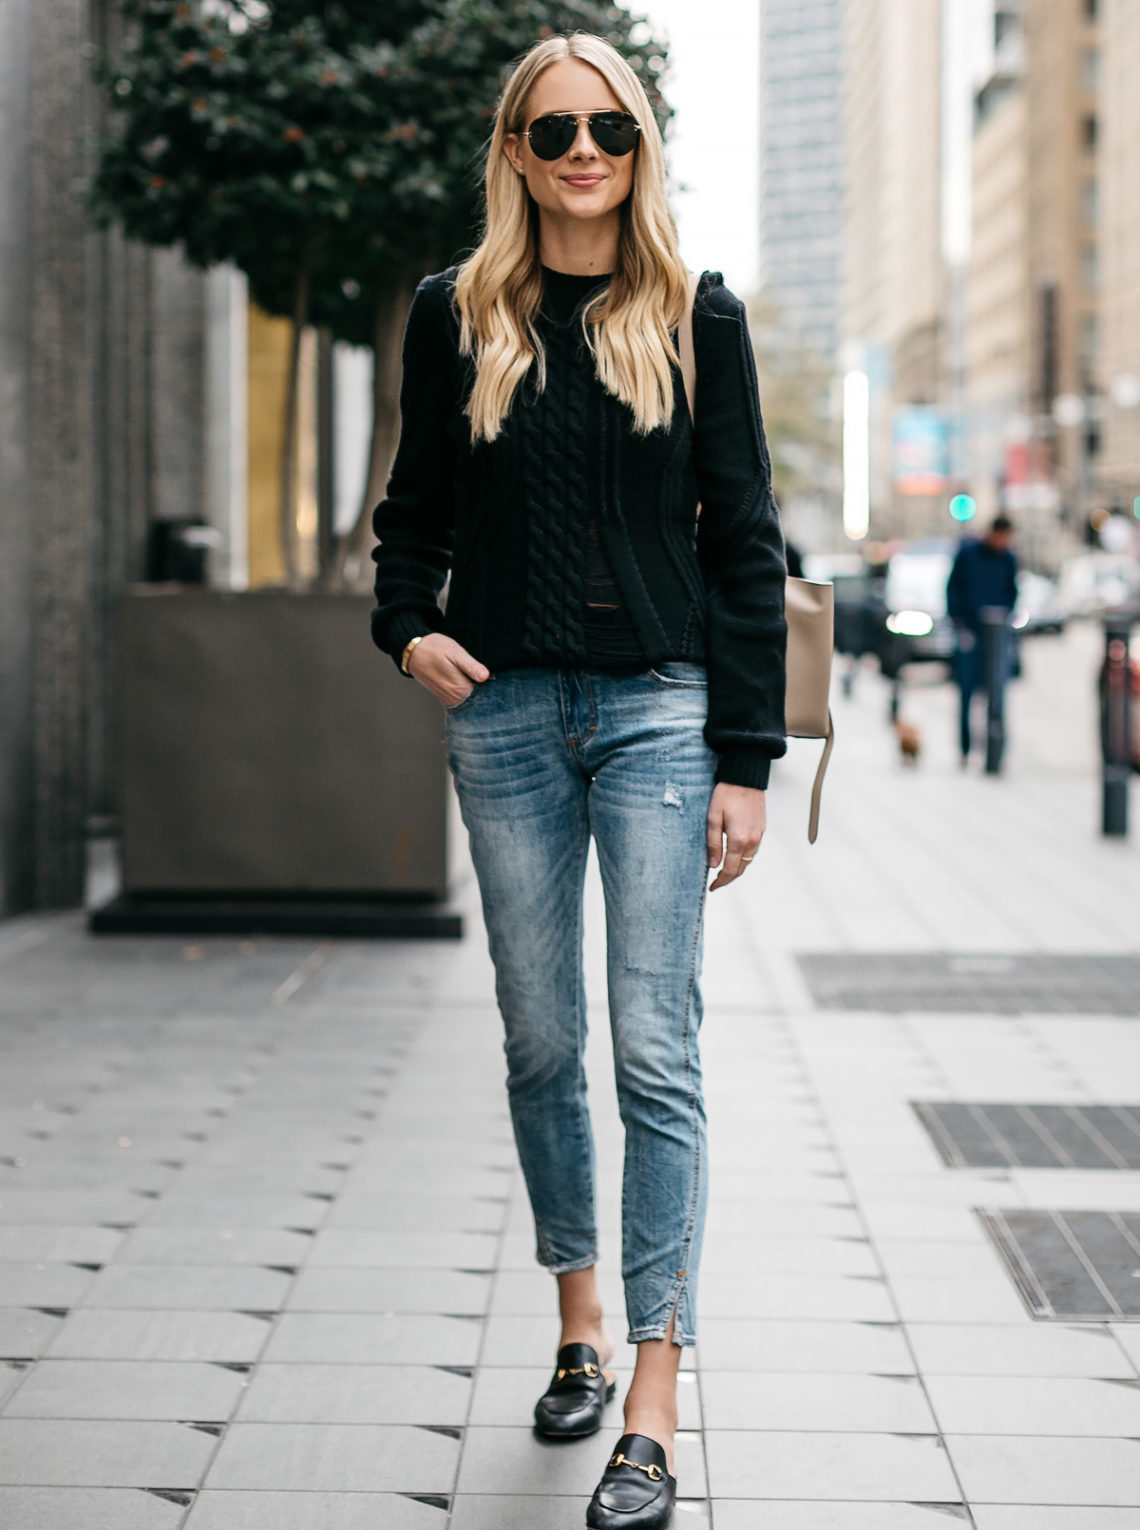 Blonde Woman Wearing Black Sweater Denim Jeans Outfit Frame Black Cable Knit Sweater Denim Split Hem Skinny Jeans Gucci Loafer Mules Fashion Jackson Dallas Blogger Fashion Blogger Street Style